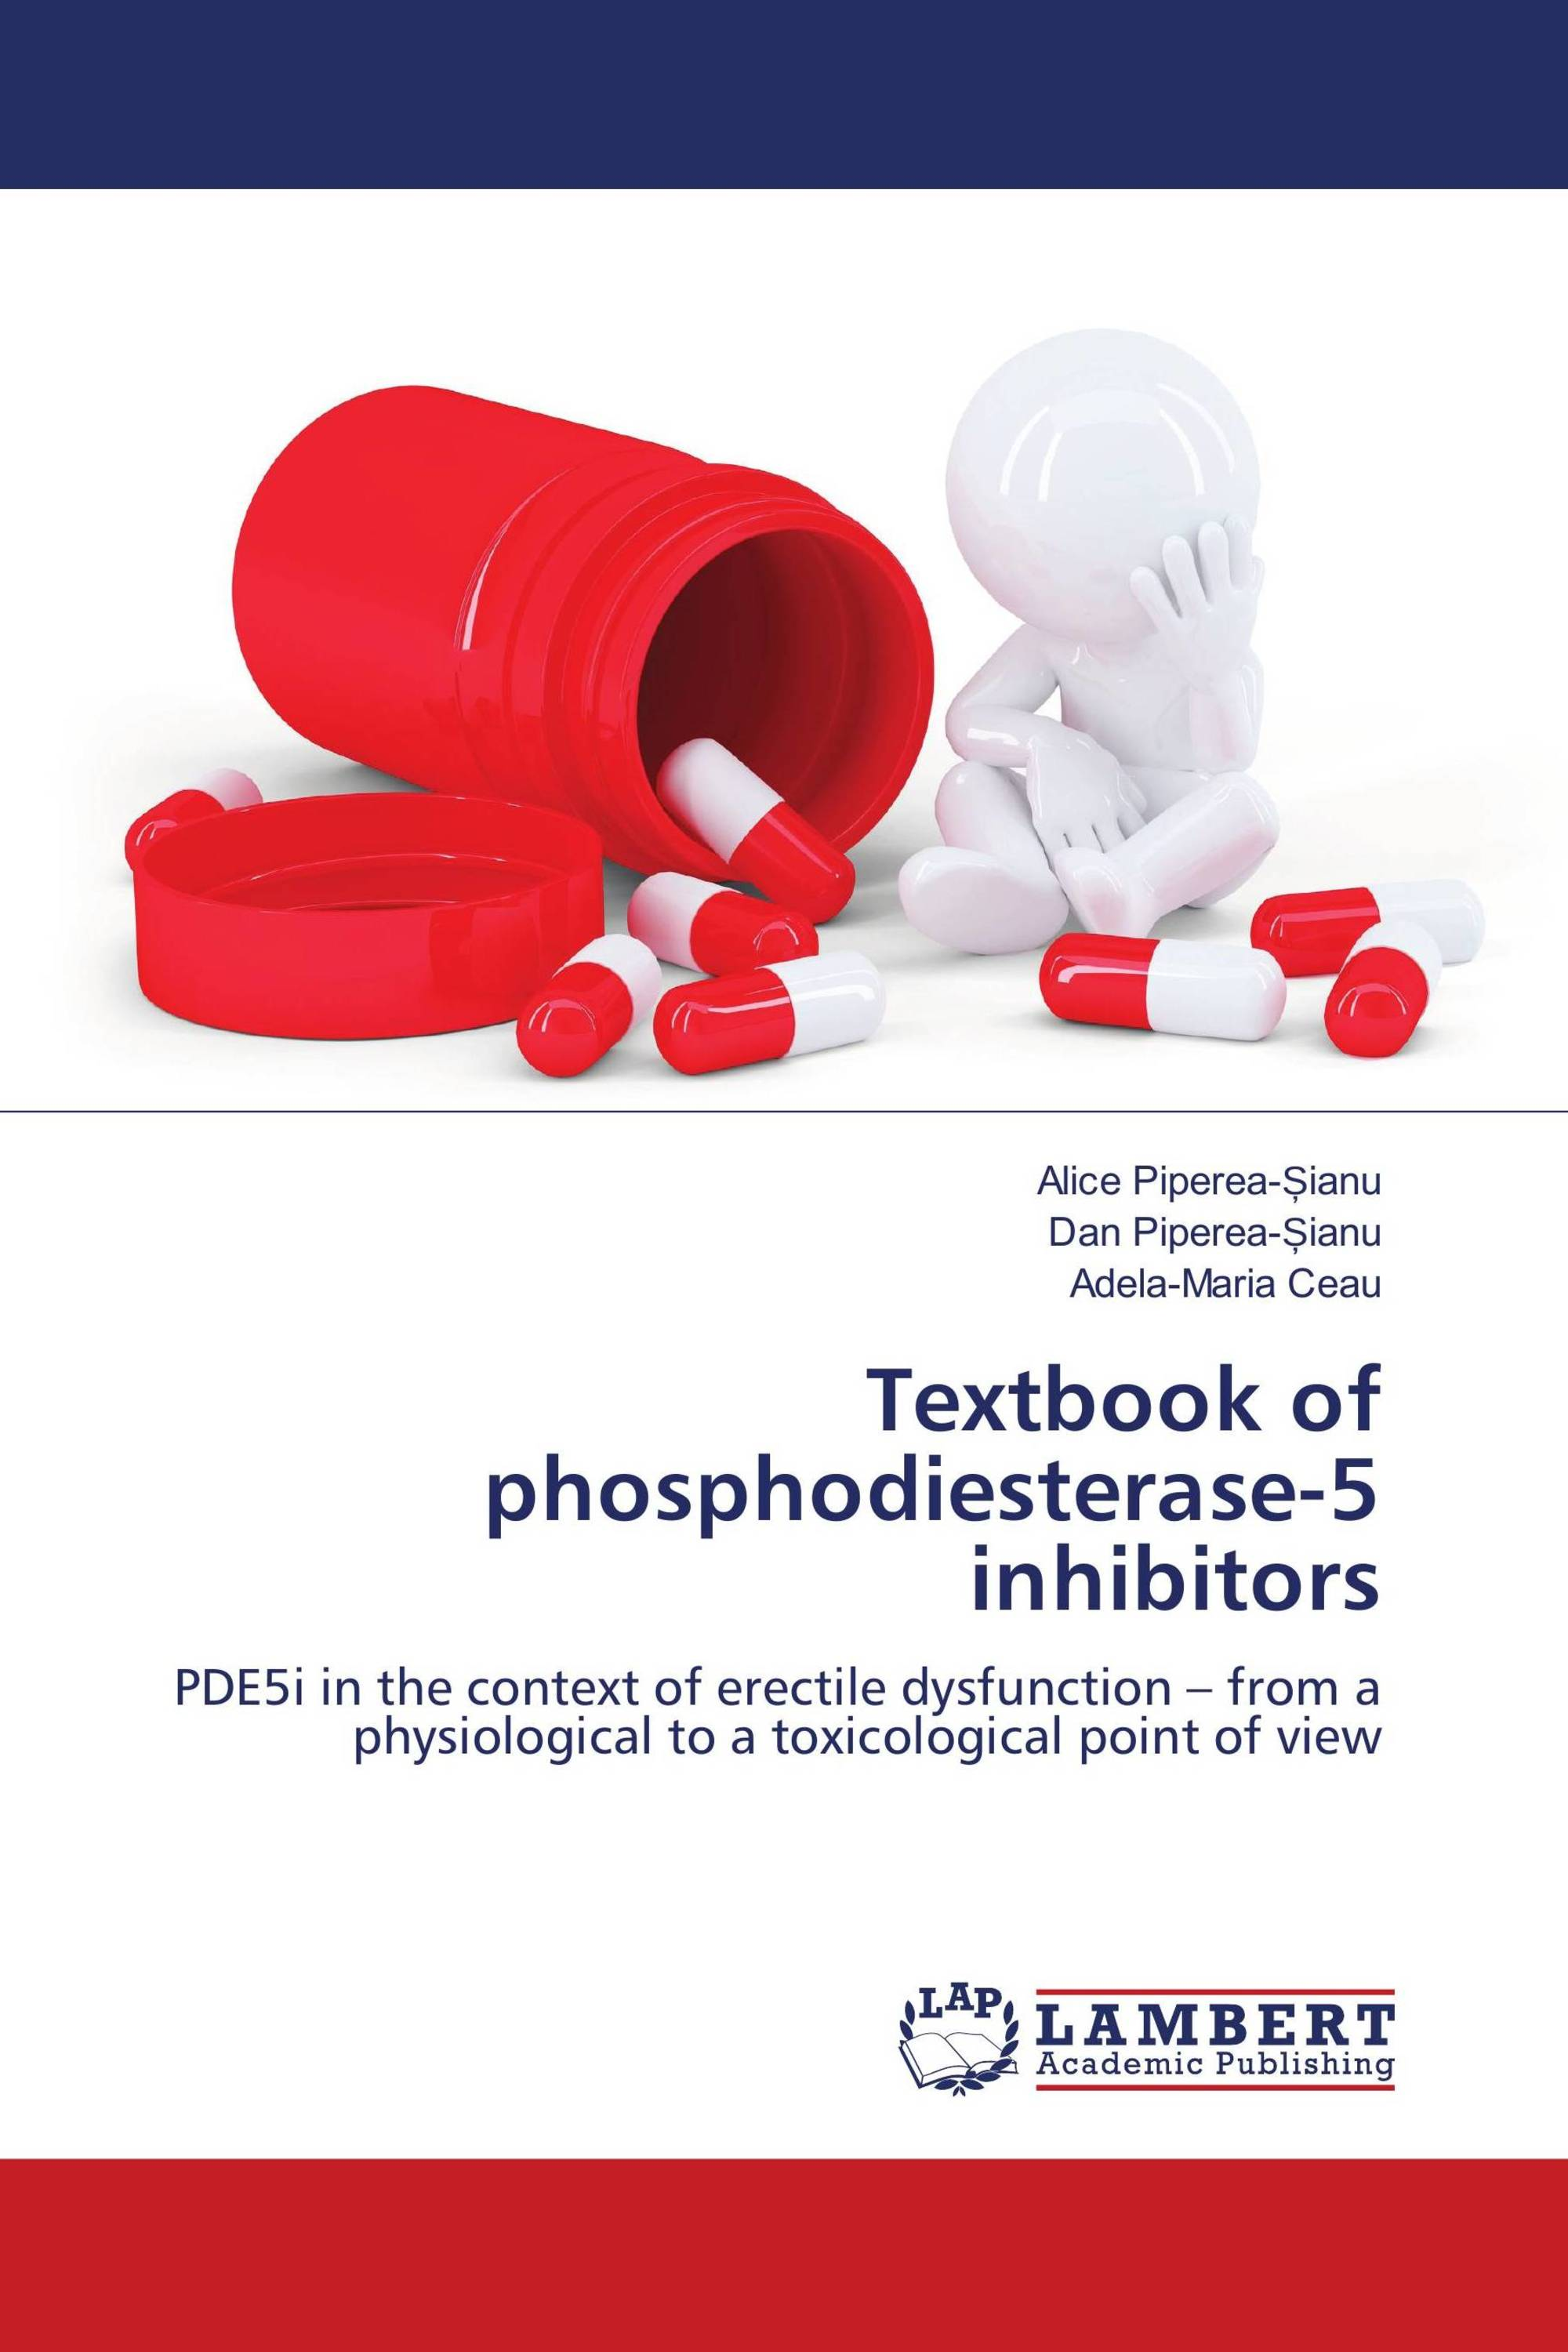 Textbook of phosphodiesterase-5 inhibitors